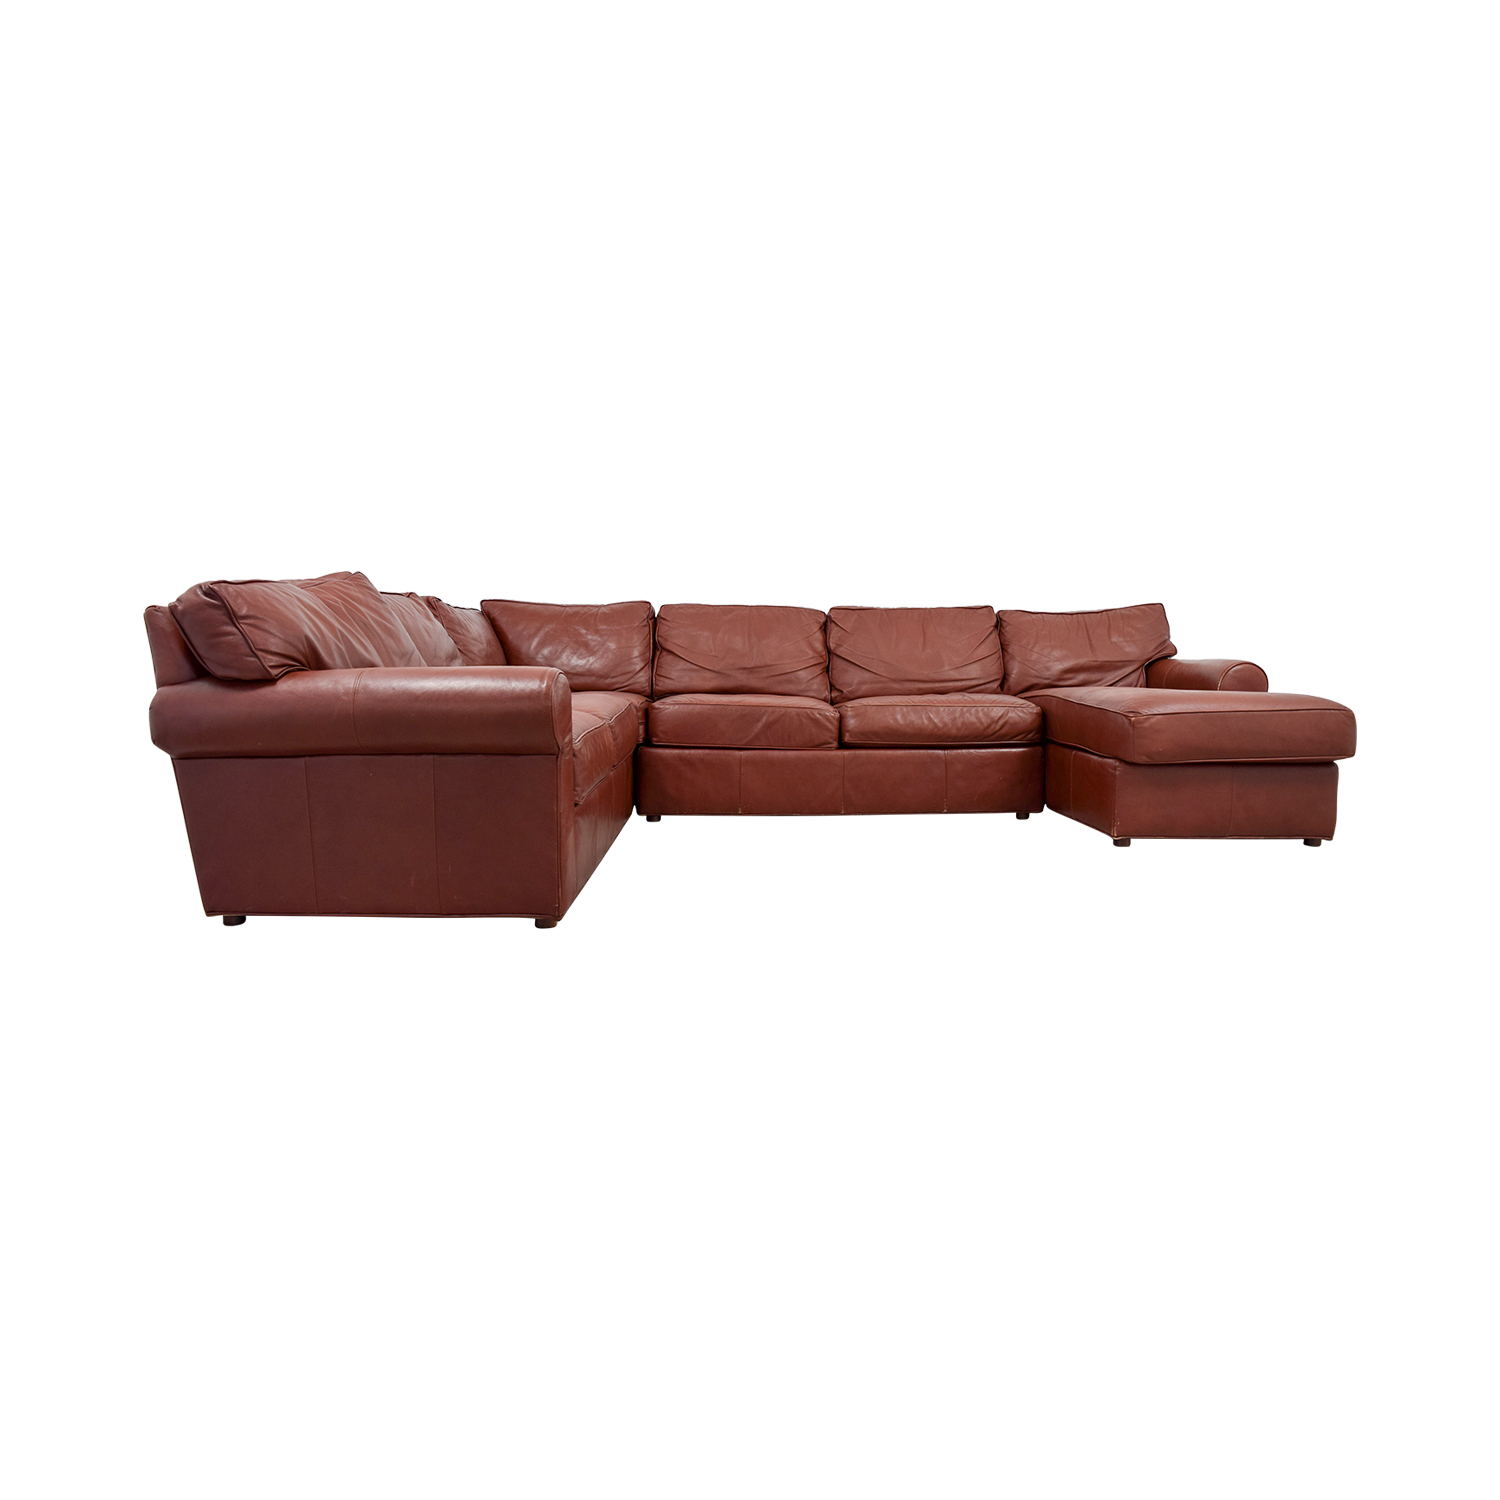 Ethan Allen Burgundy Leather Sectional with Lounger Ethan Allen